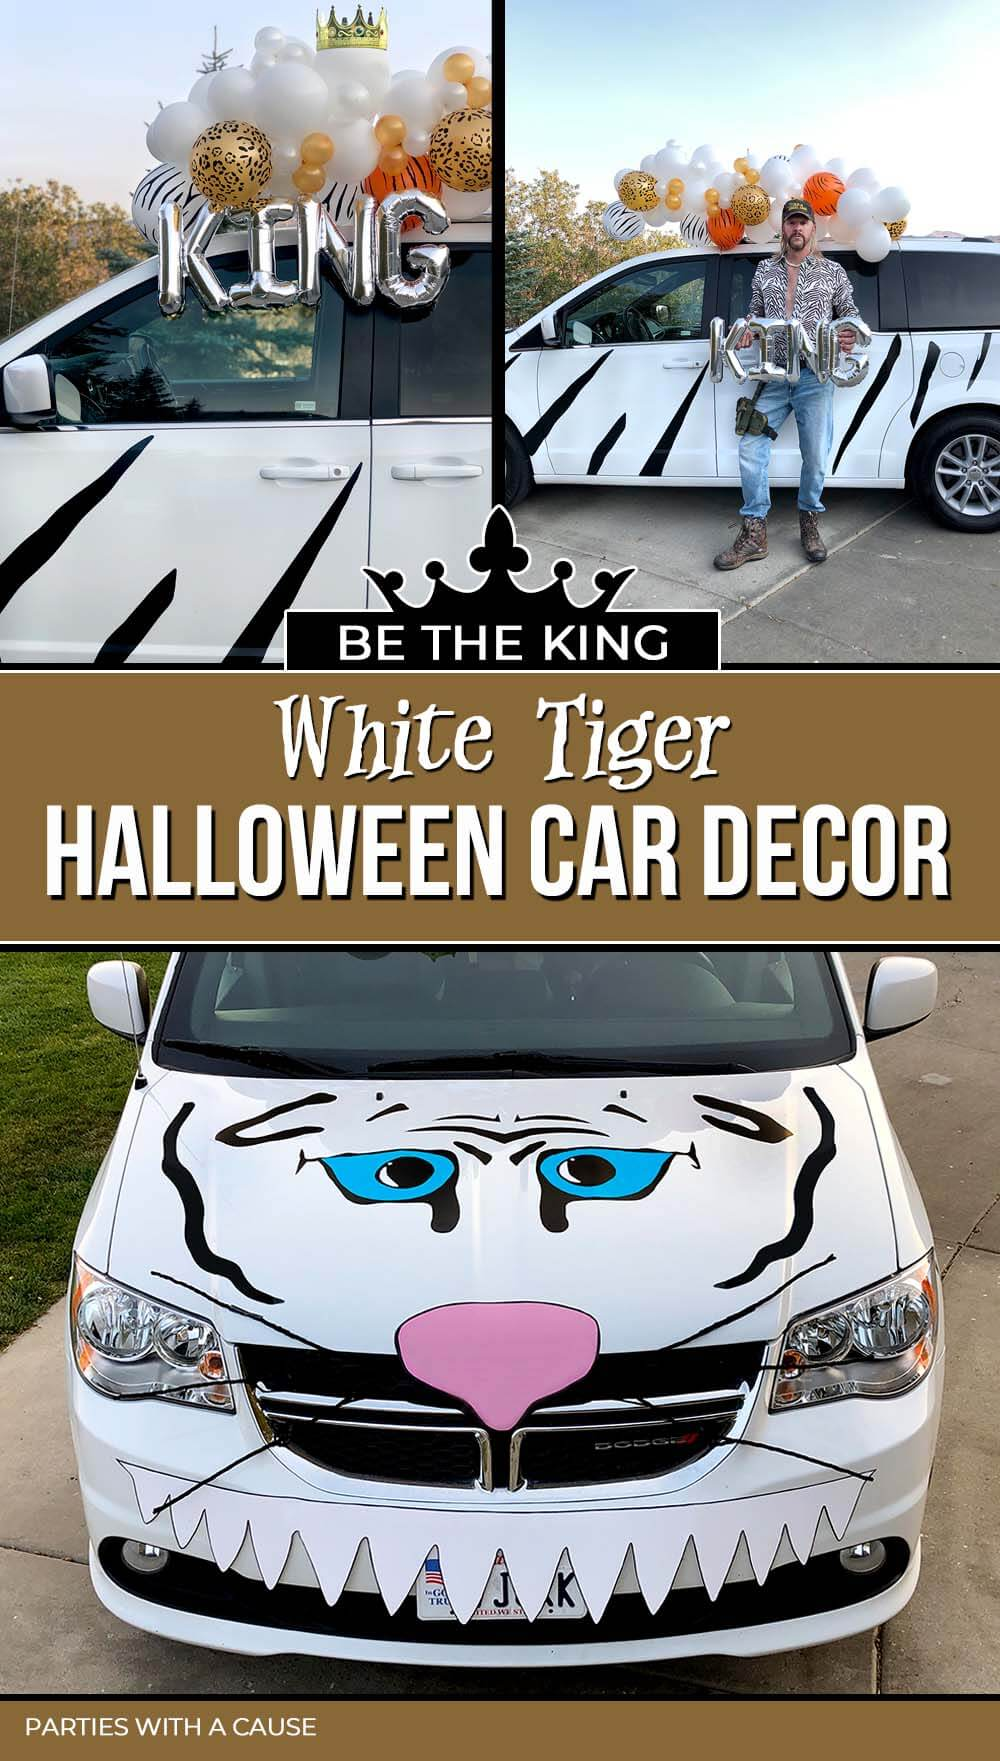 White Tiger Halloween Car Decorations